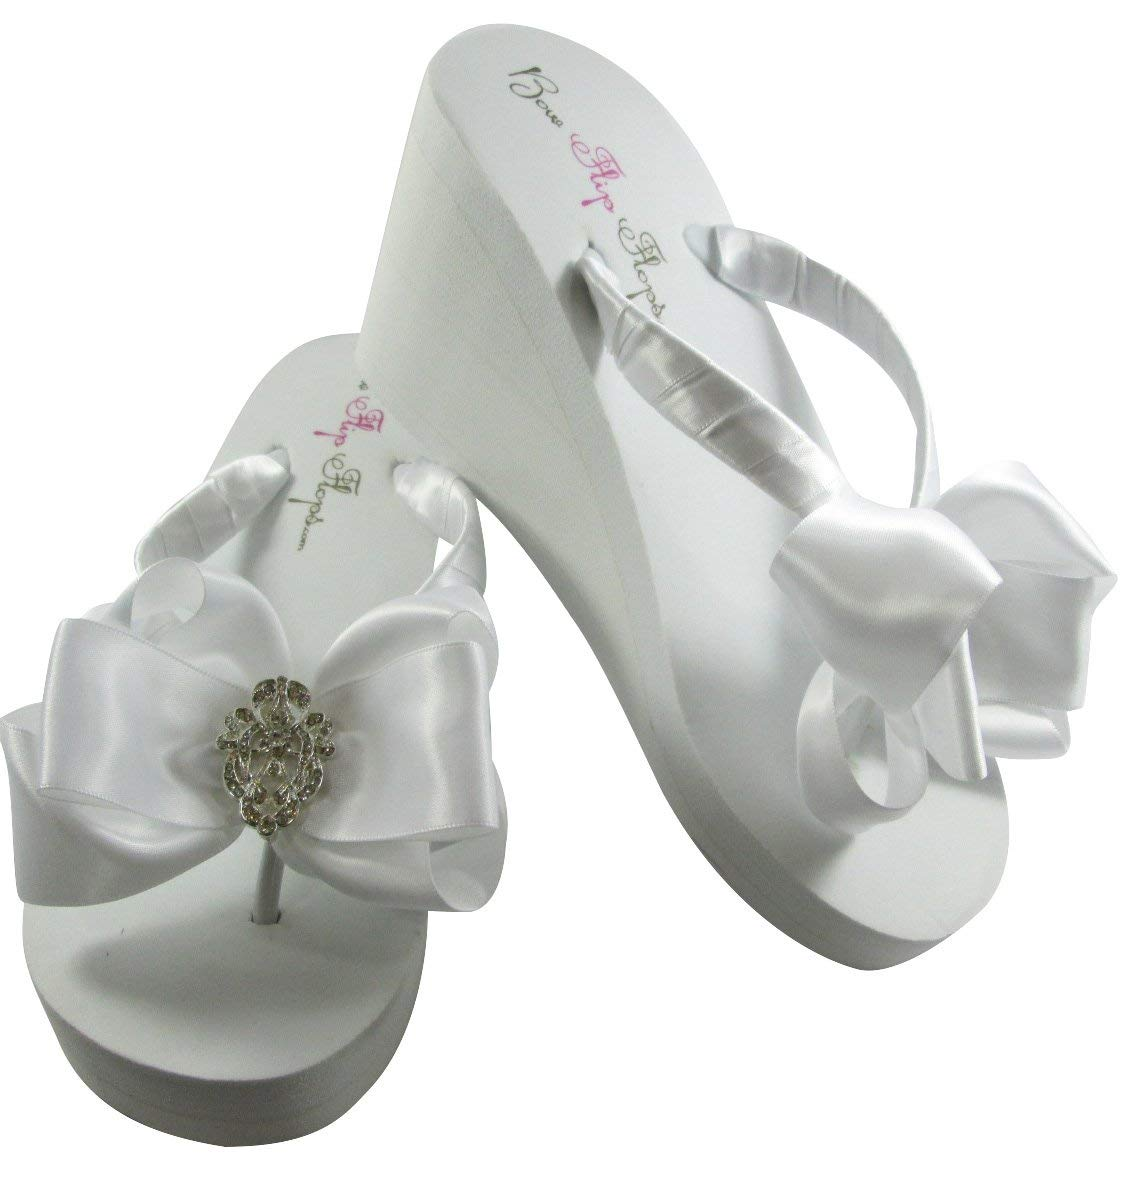 477a2d8cf311a Cheap Bridal White Flip Flops, find Bridal White Flip Flops deals on ...